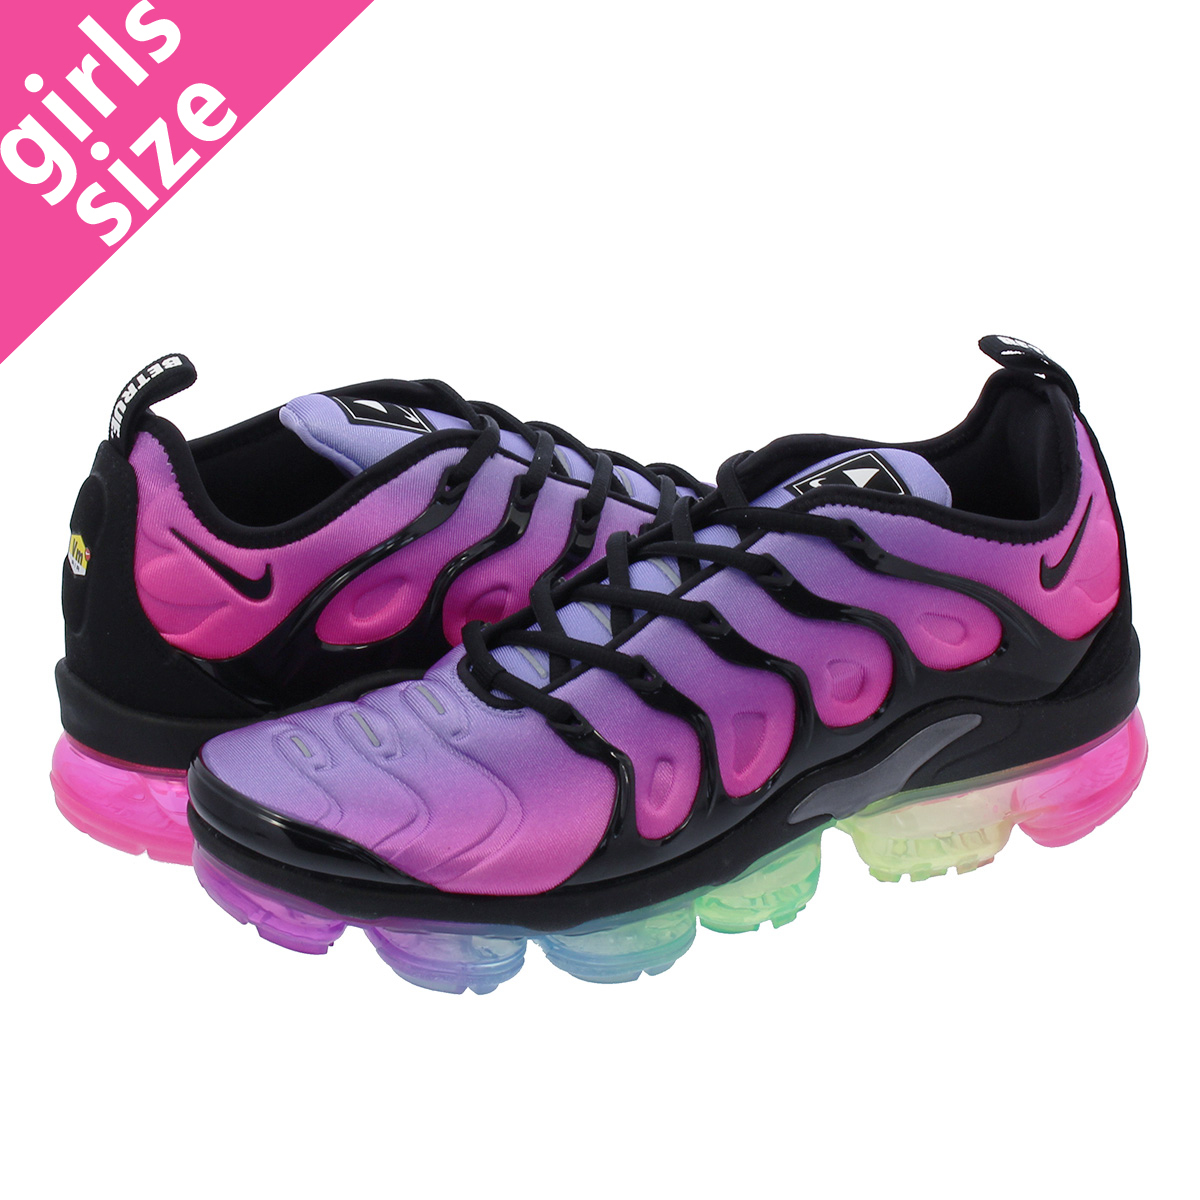 7c13fea2650503 LOWTEX BIG-SMALL SHOP  NIKE AIR VAPORMAX PLUS Nike vapor max plus PURPLE  PULSE PINK BLAST MULTI COLOR BLACK ar4791-500